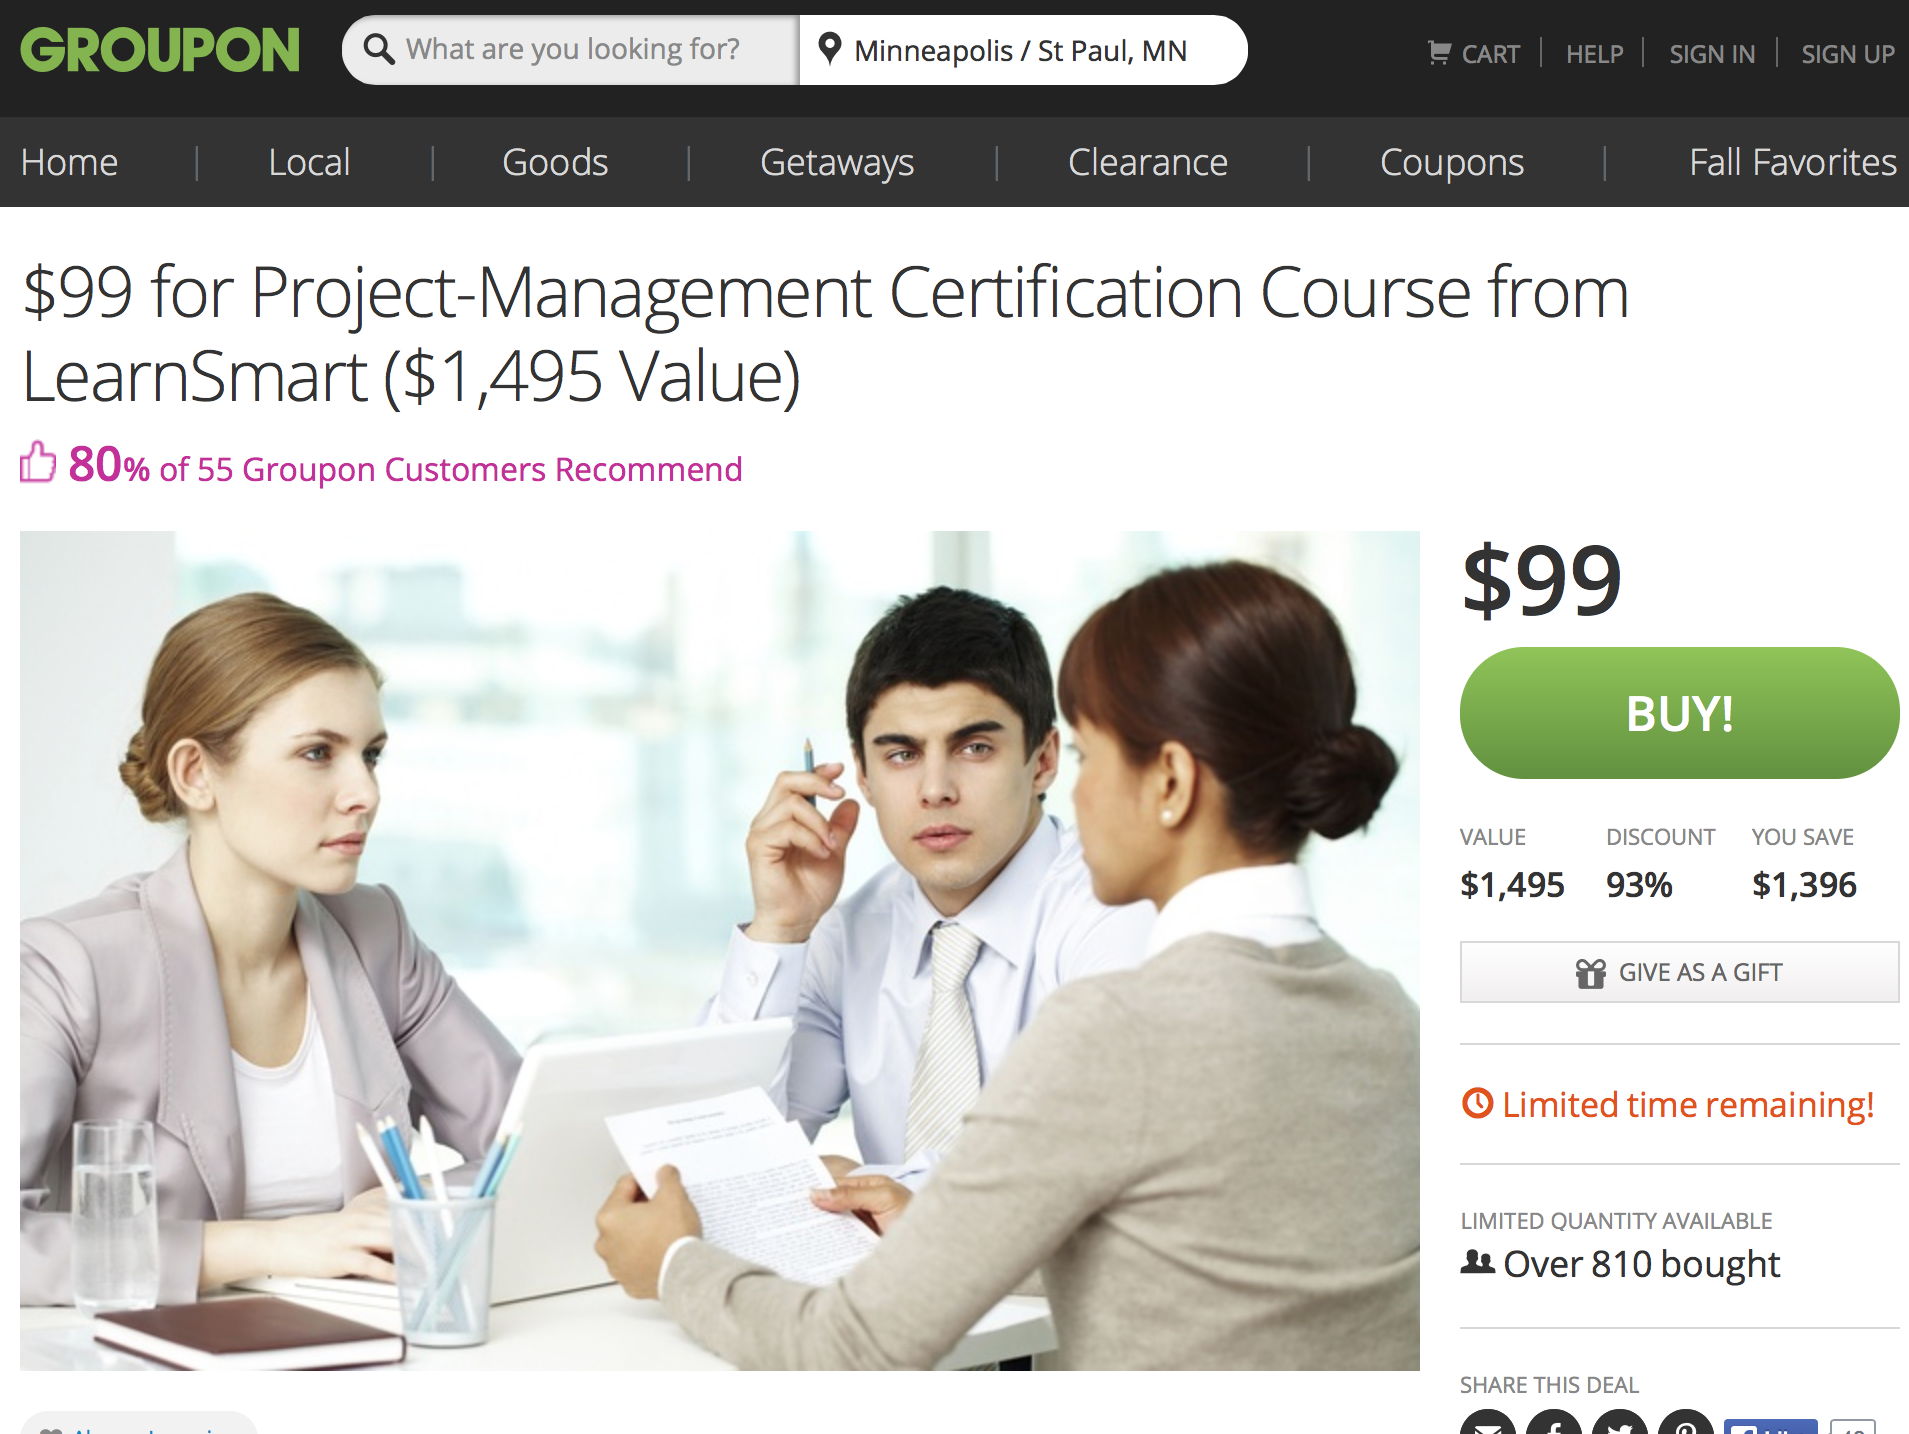 810 people bought this project management course on groupon future grouponpm 1betcityfo Image collections